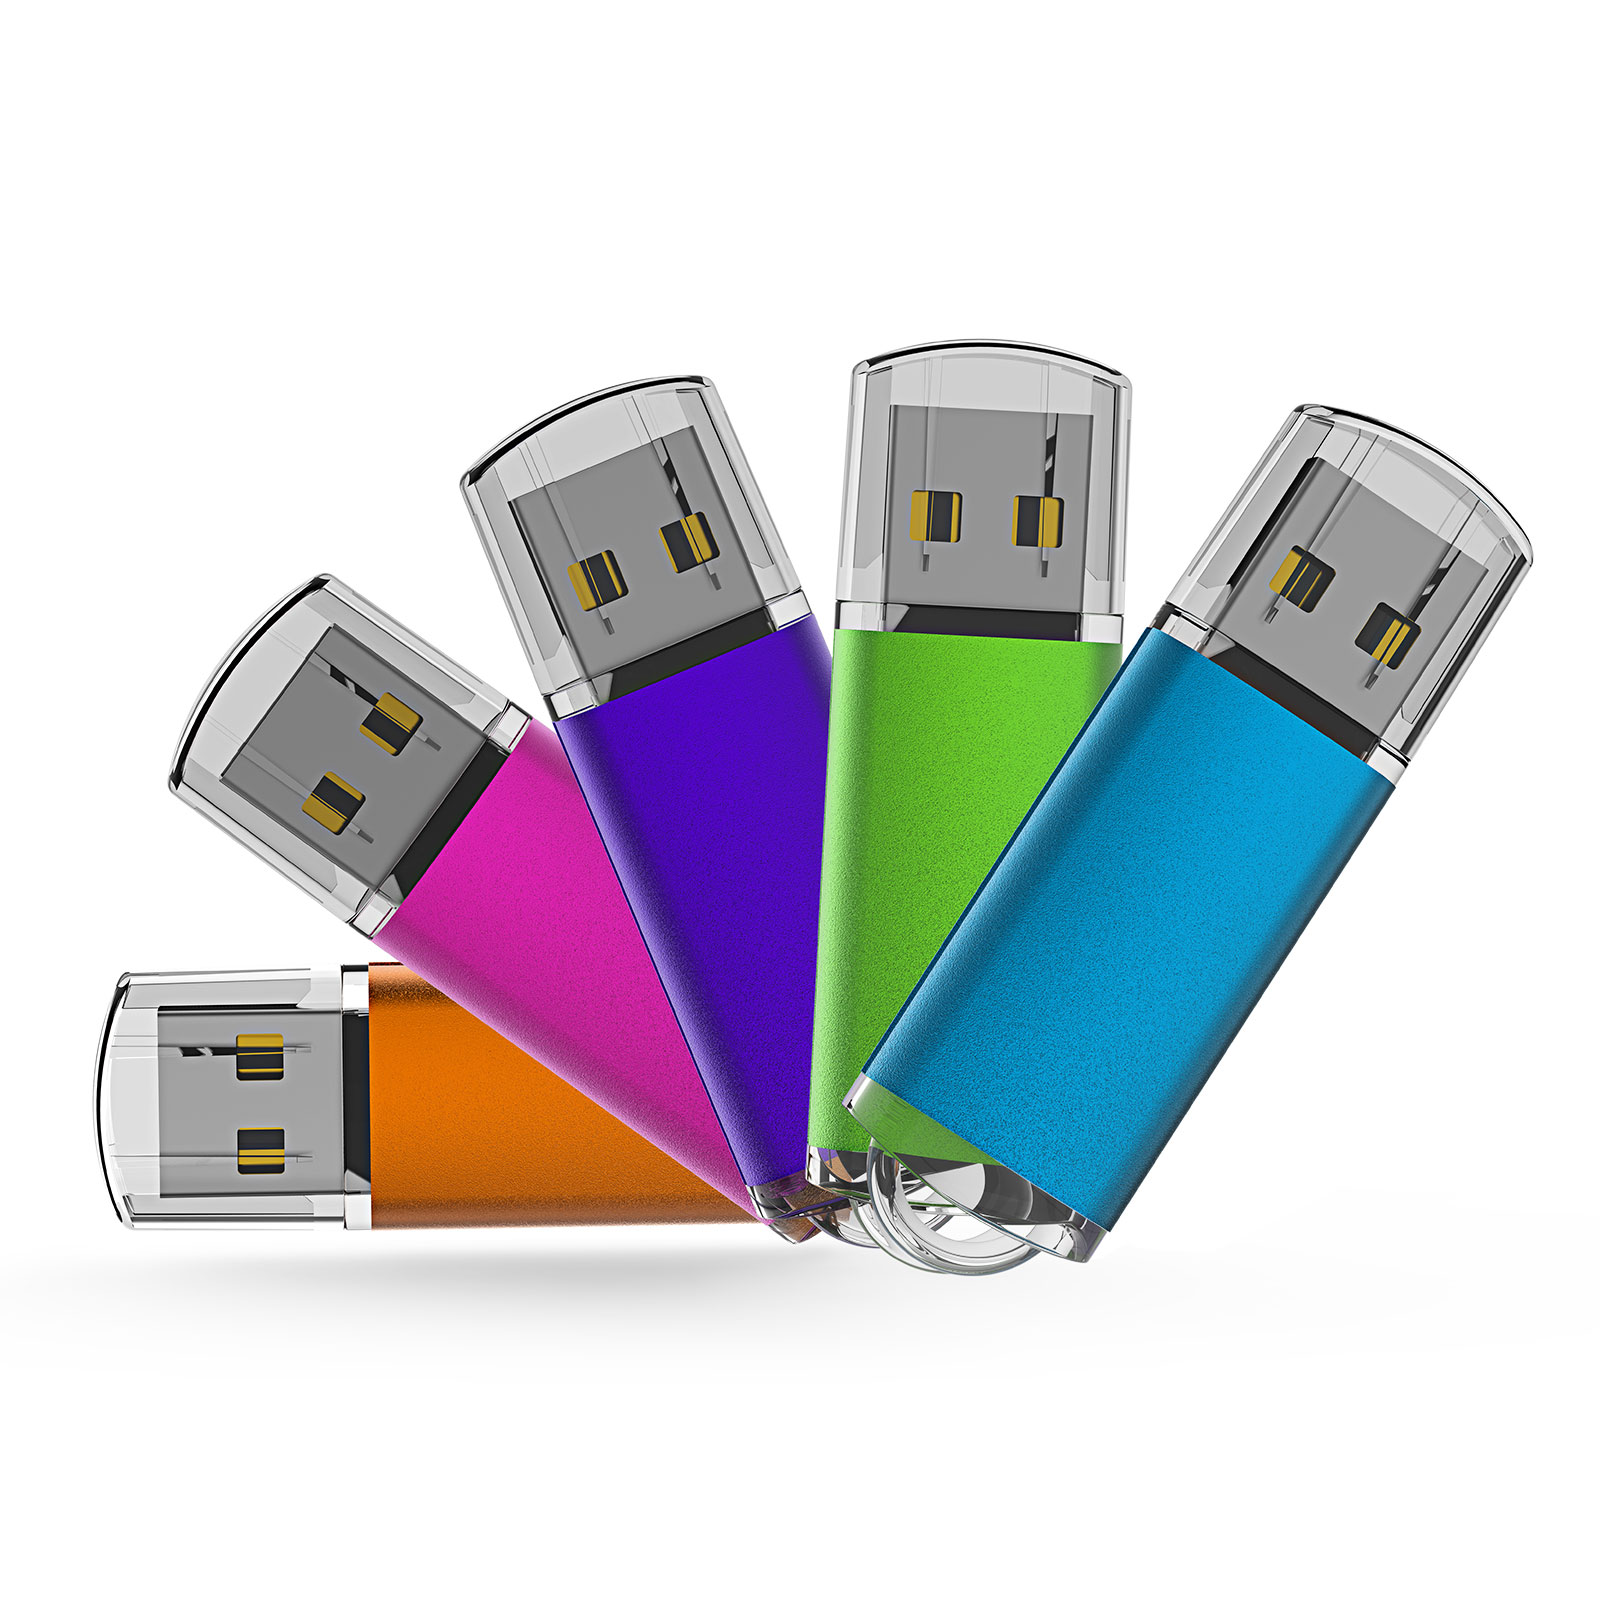 KOOTION 5pack 1GB USB 2.0 Flash Drive Thumb Drives Memory Stick, 5 Mixed Colors: Blue, Purple, Pink, Green, Orange